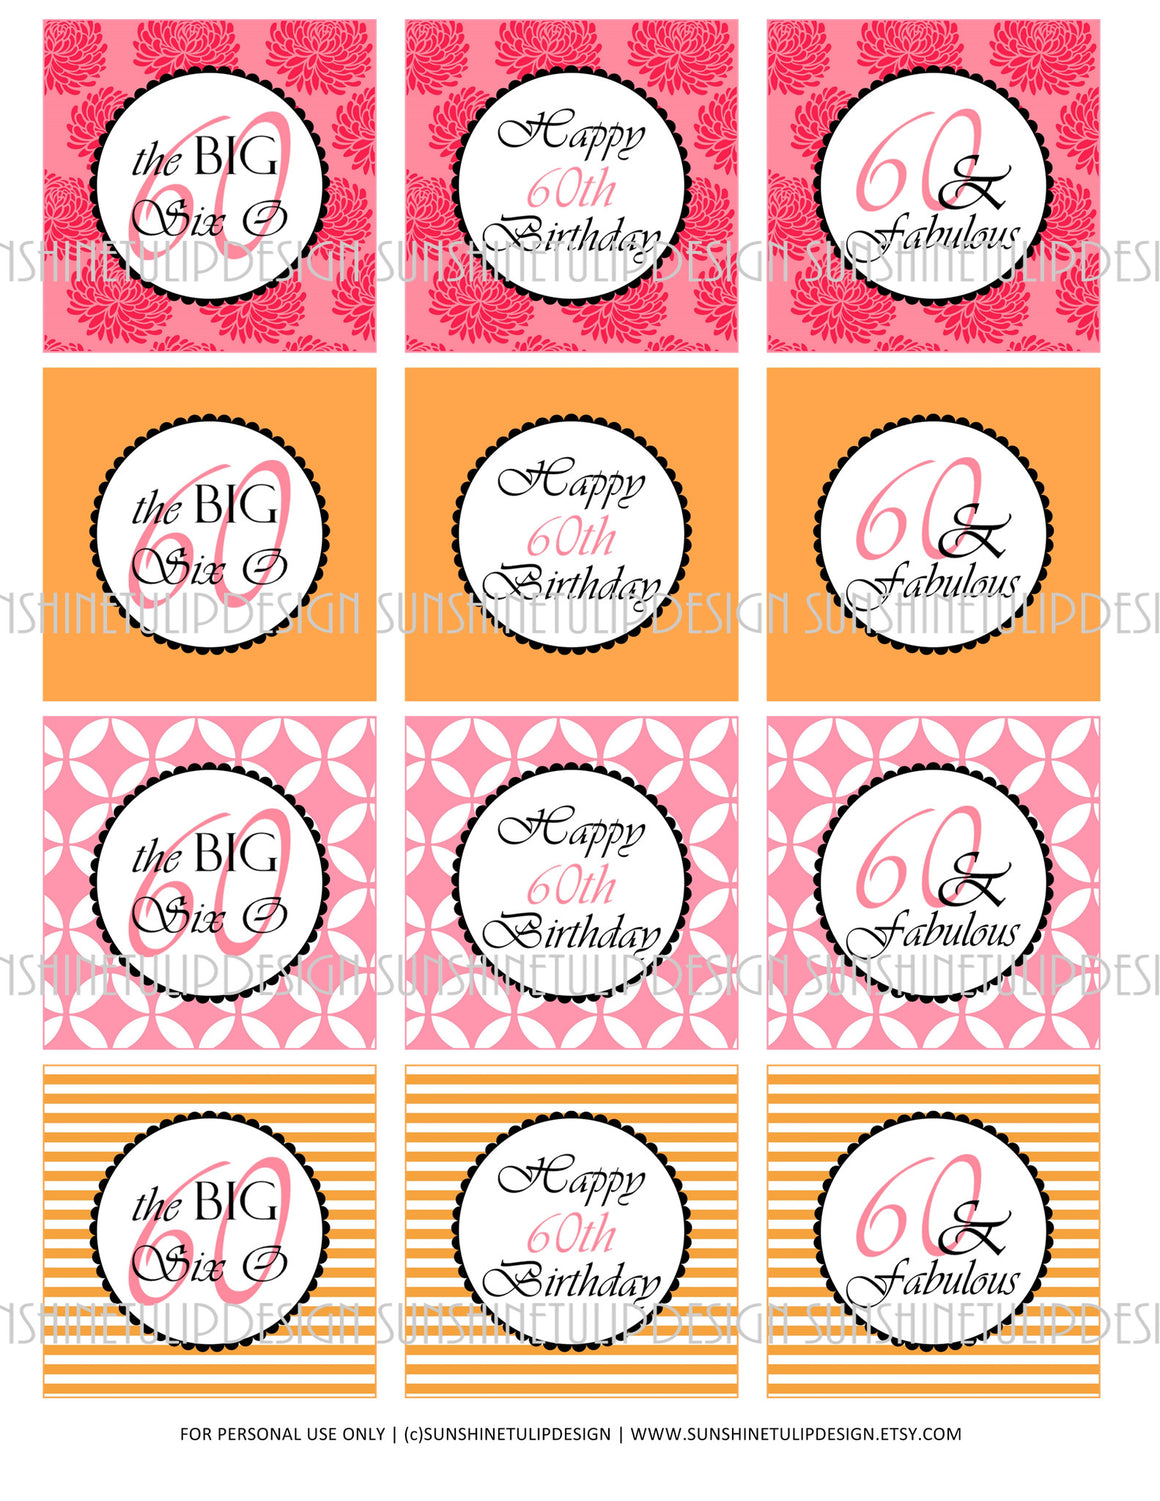 Printable 60th Birthday Pink & Orange Cupcake Toppers, Sticker Labels & Party Favor Tags - Sunshinetulipdesign